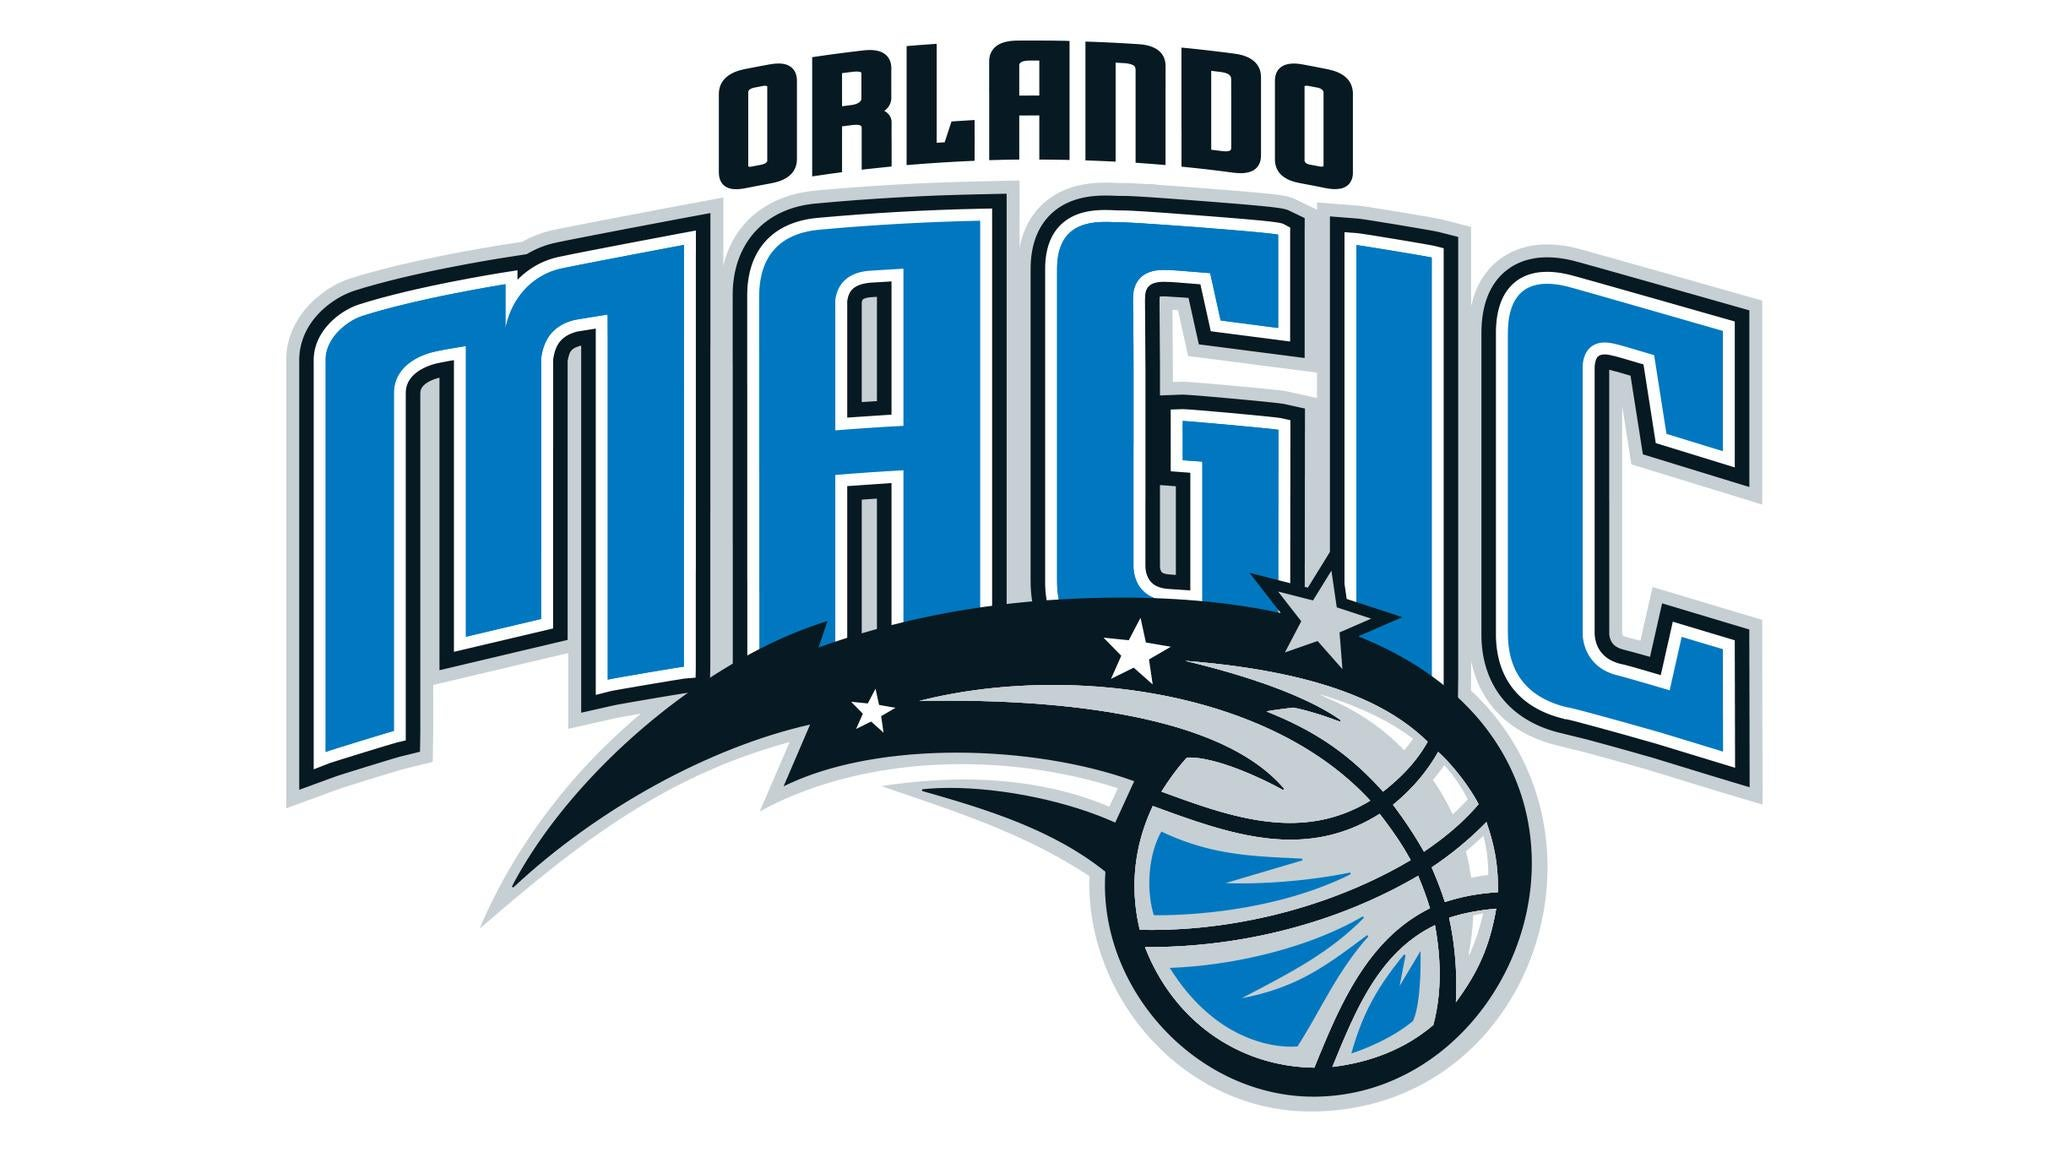 Orlando Magic vs. Atlanta Hawks at Amway Center